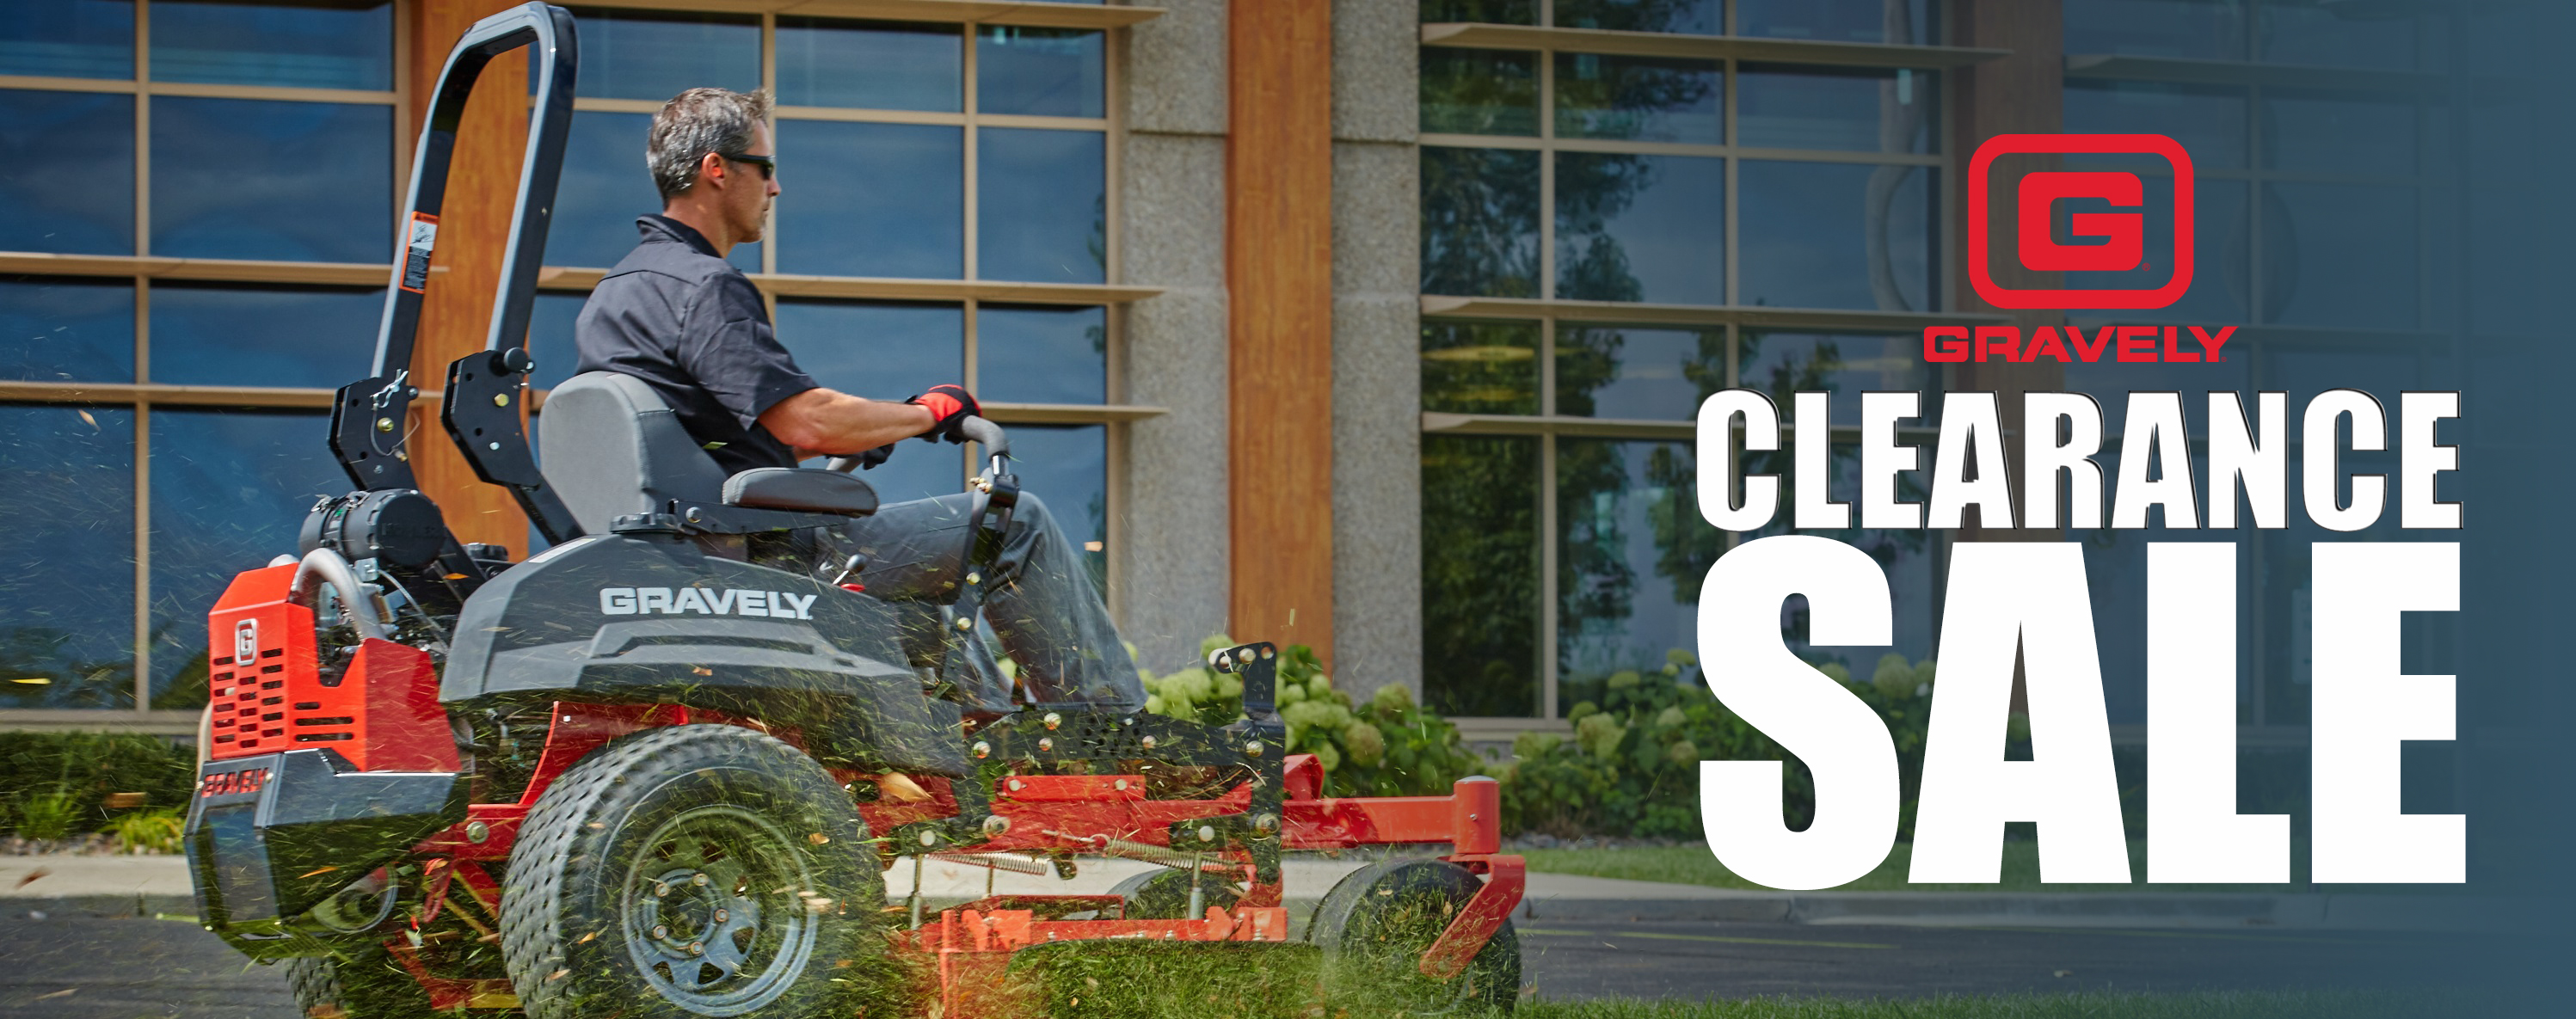 Gravely Clearance Sale